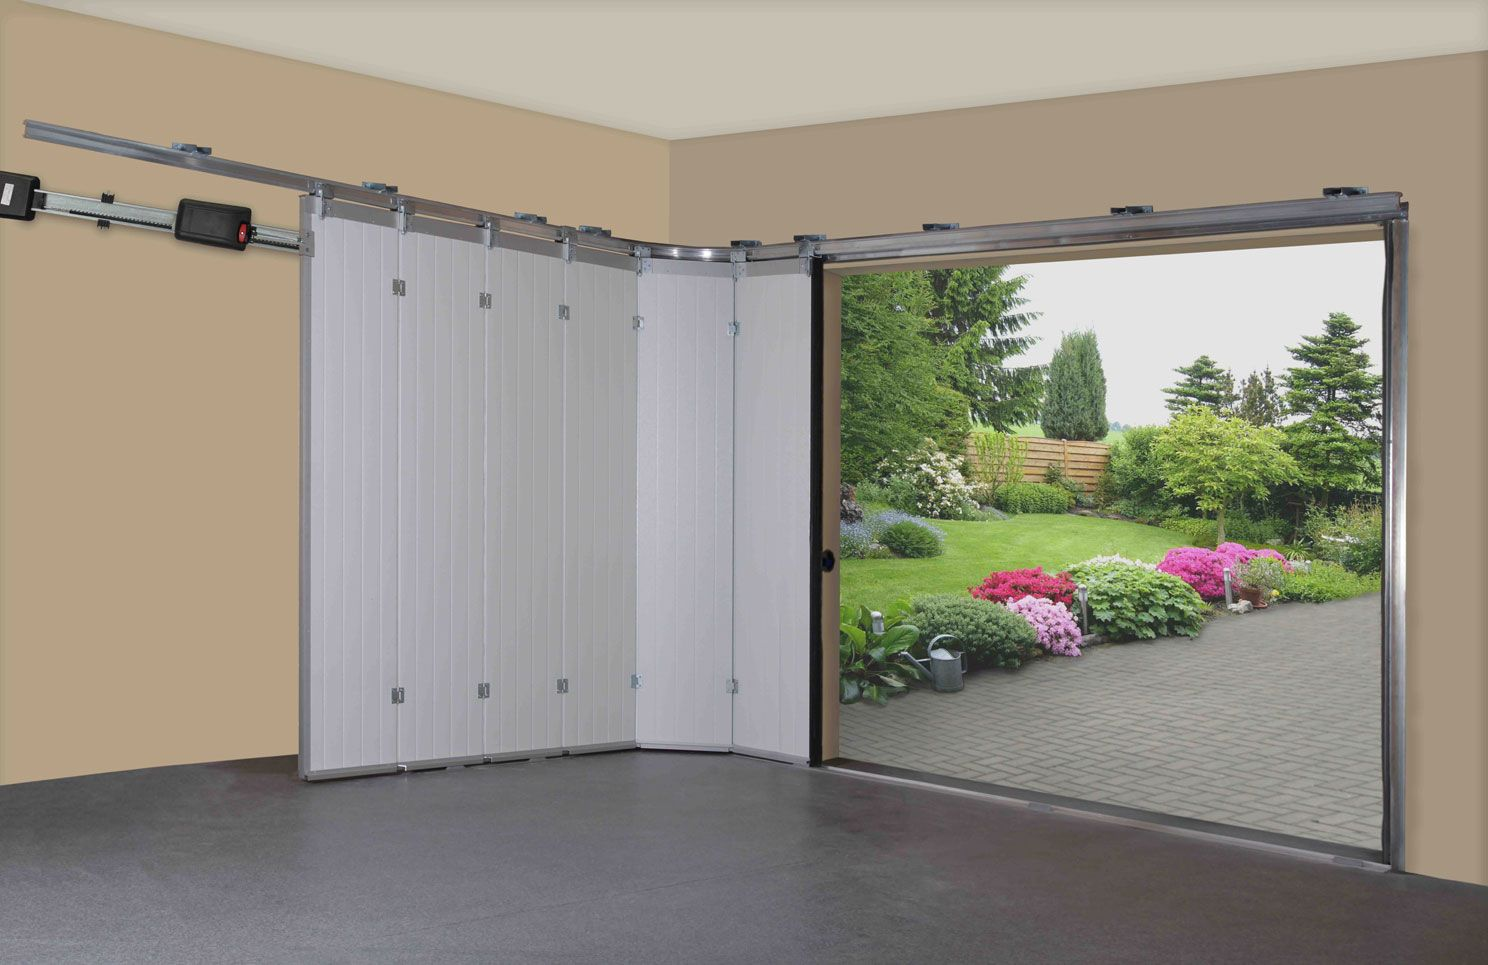 Sliding Garage Doors Making Faster To Access Your Garage